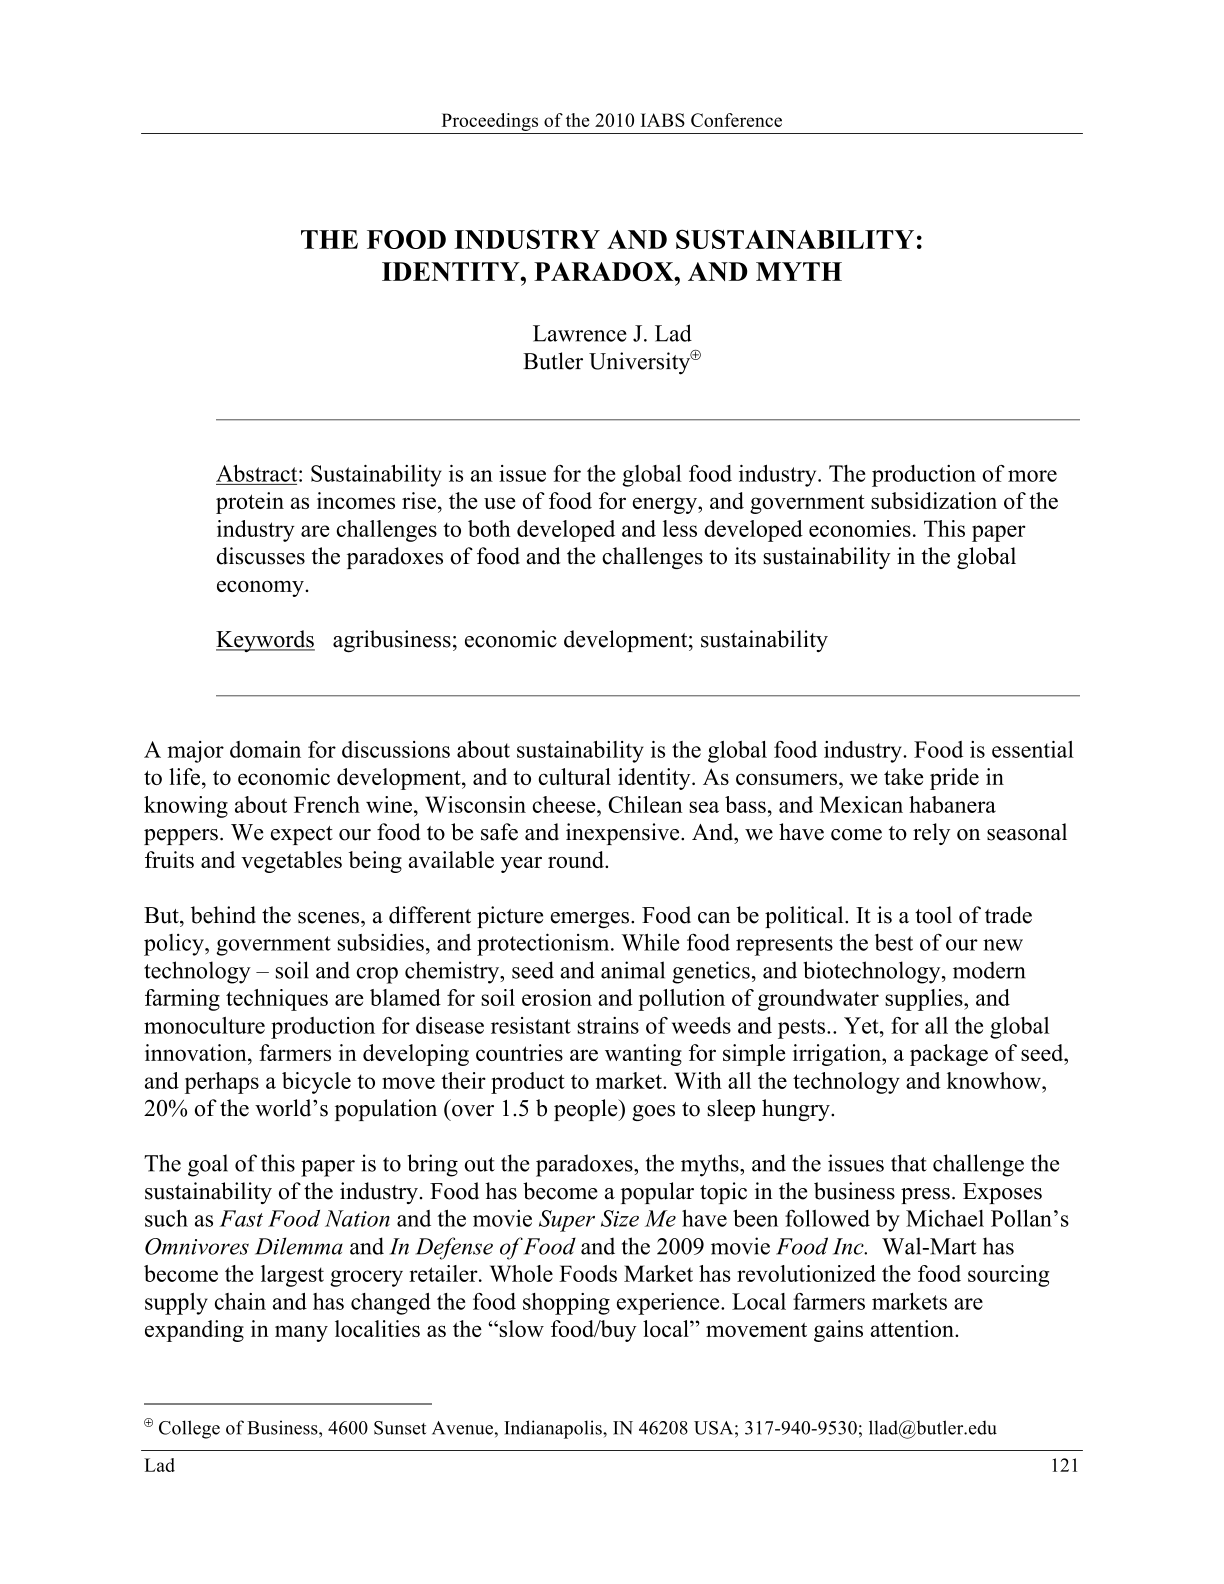 The Food Industry and Sustainability: Identity, Paradox, and